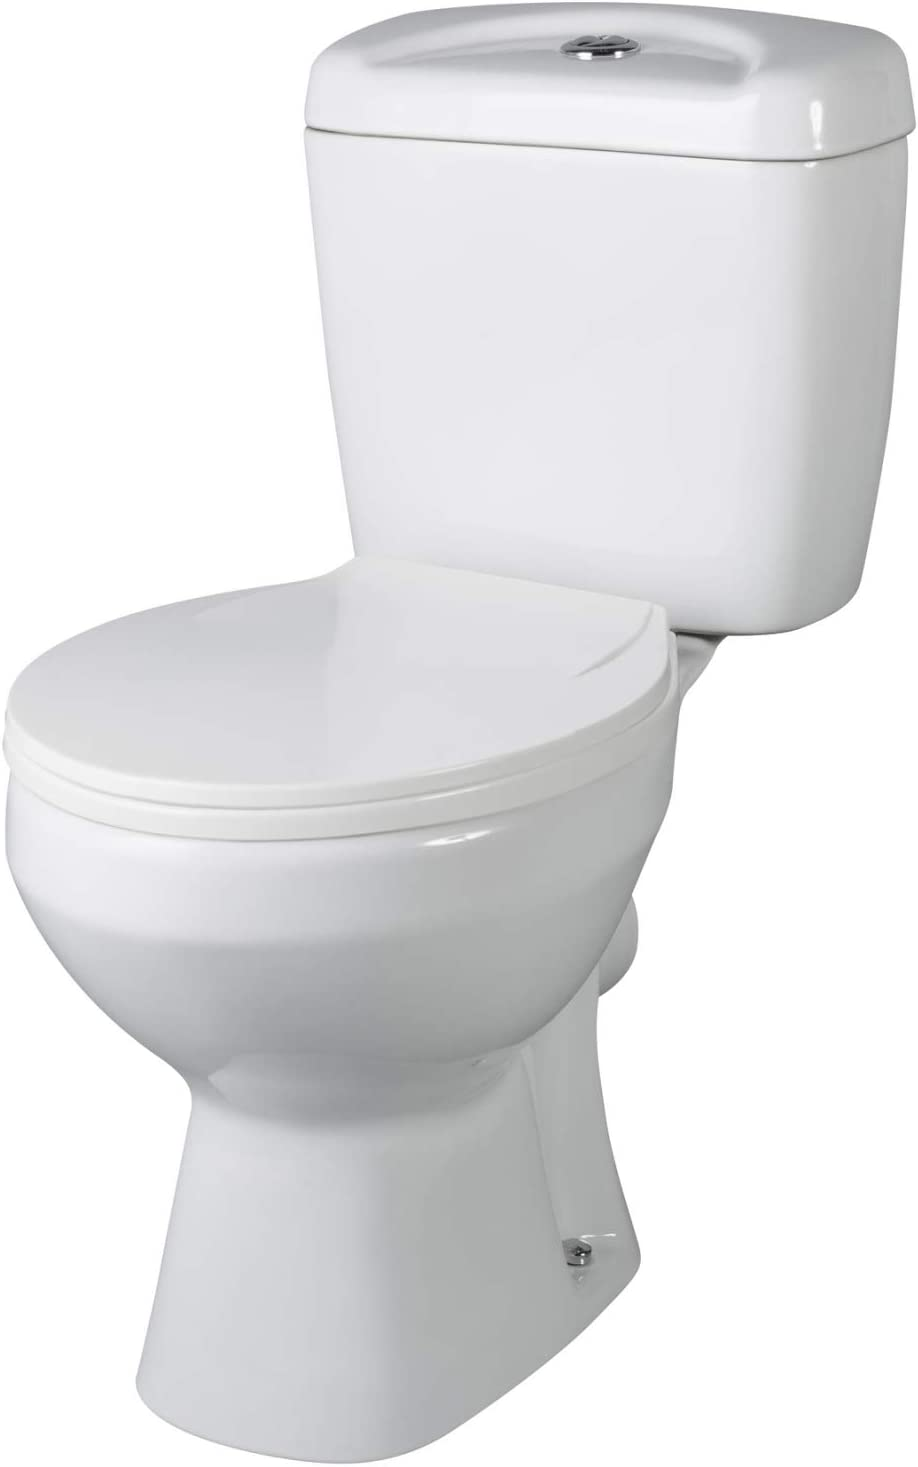 VeeBath Base Ceramic White Close Coupled Modern Cloakroom Bathroom WC Toilet Pan & Cistern with Soft Closing Seat